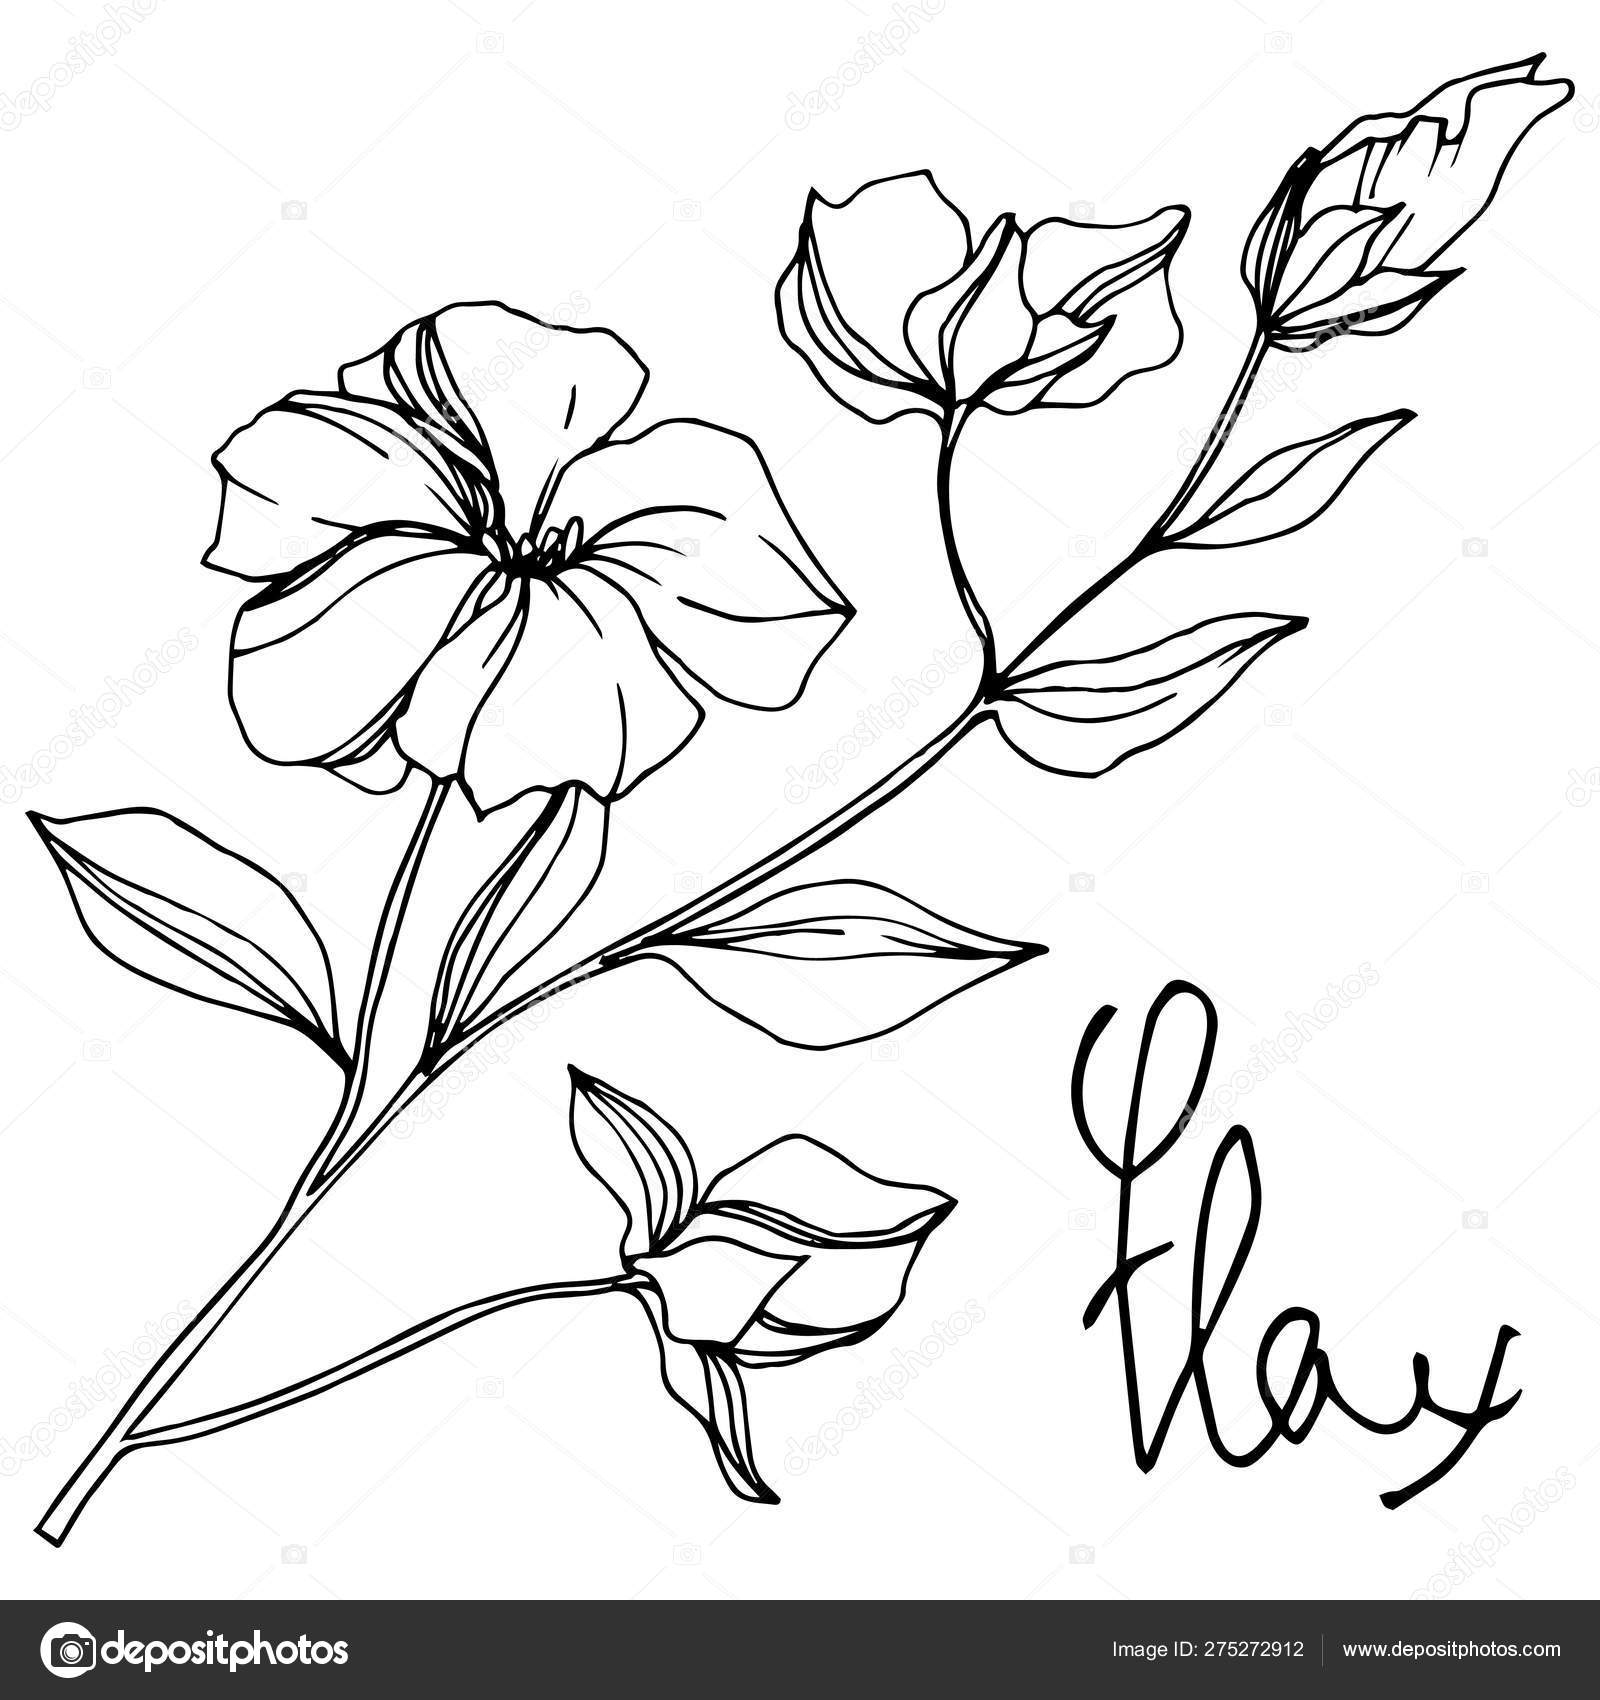 Vector Flax floral botanical flowers. Black and white